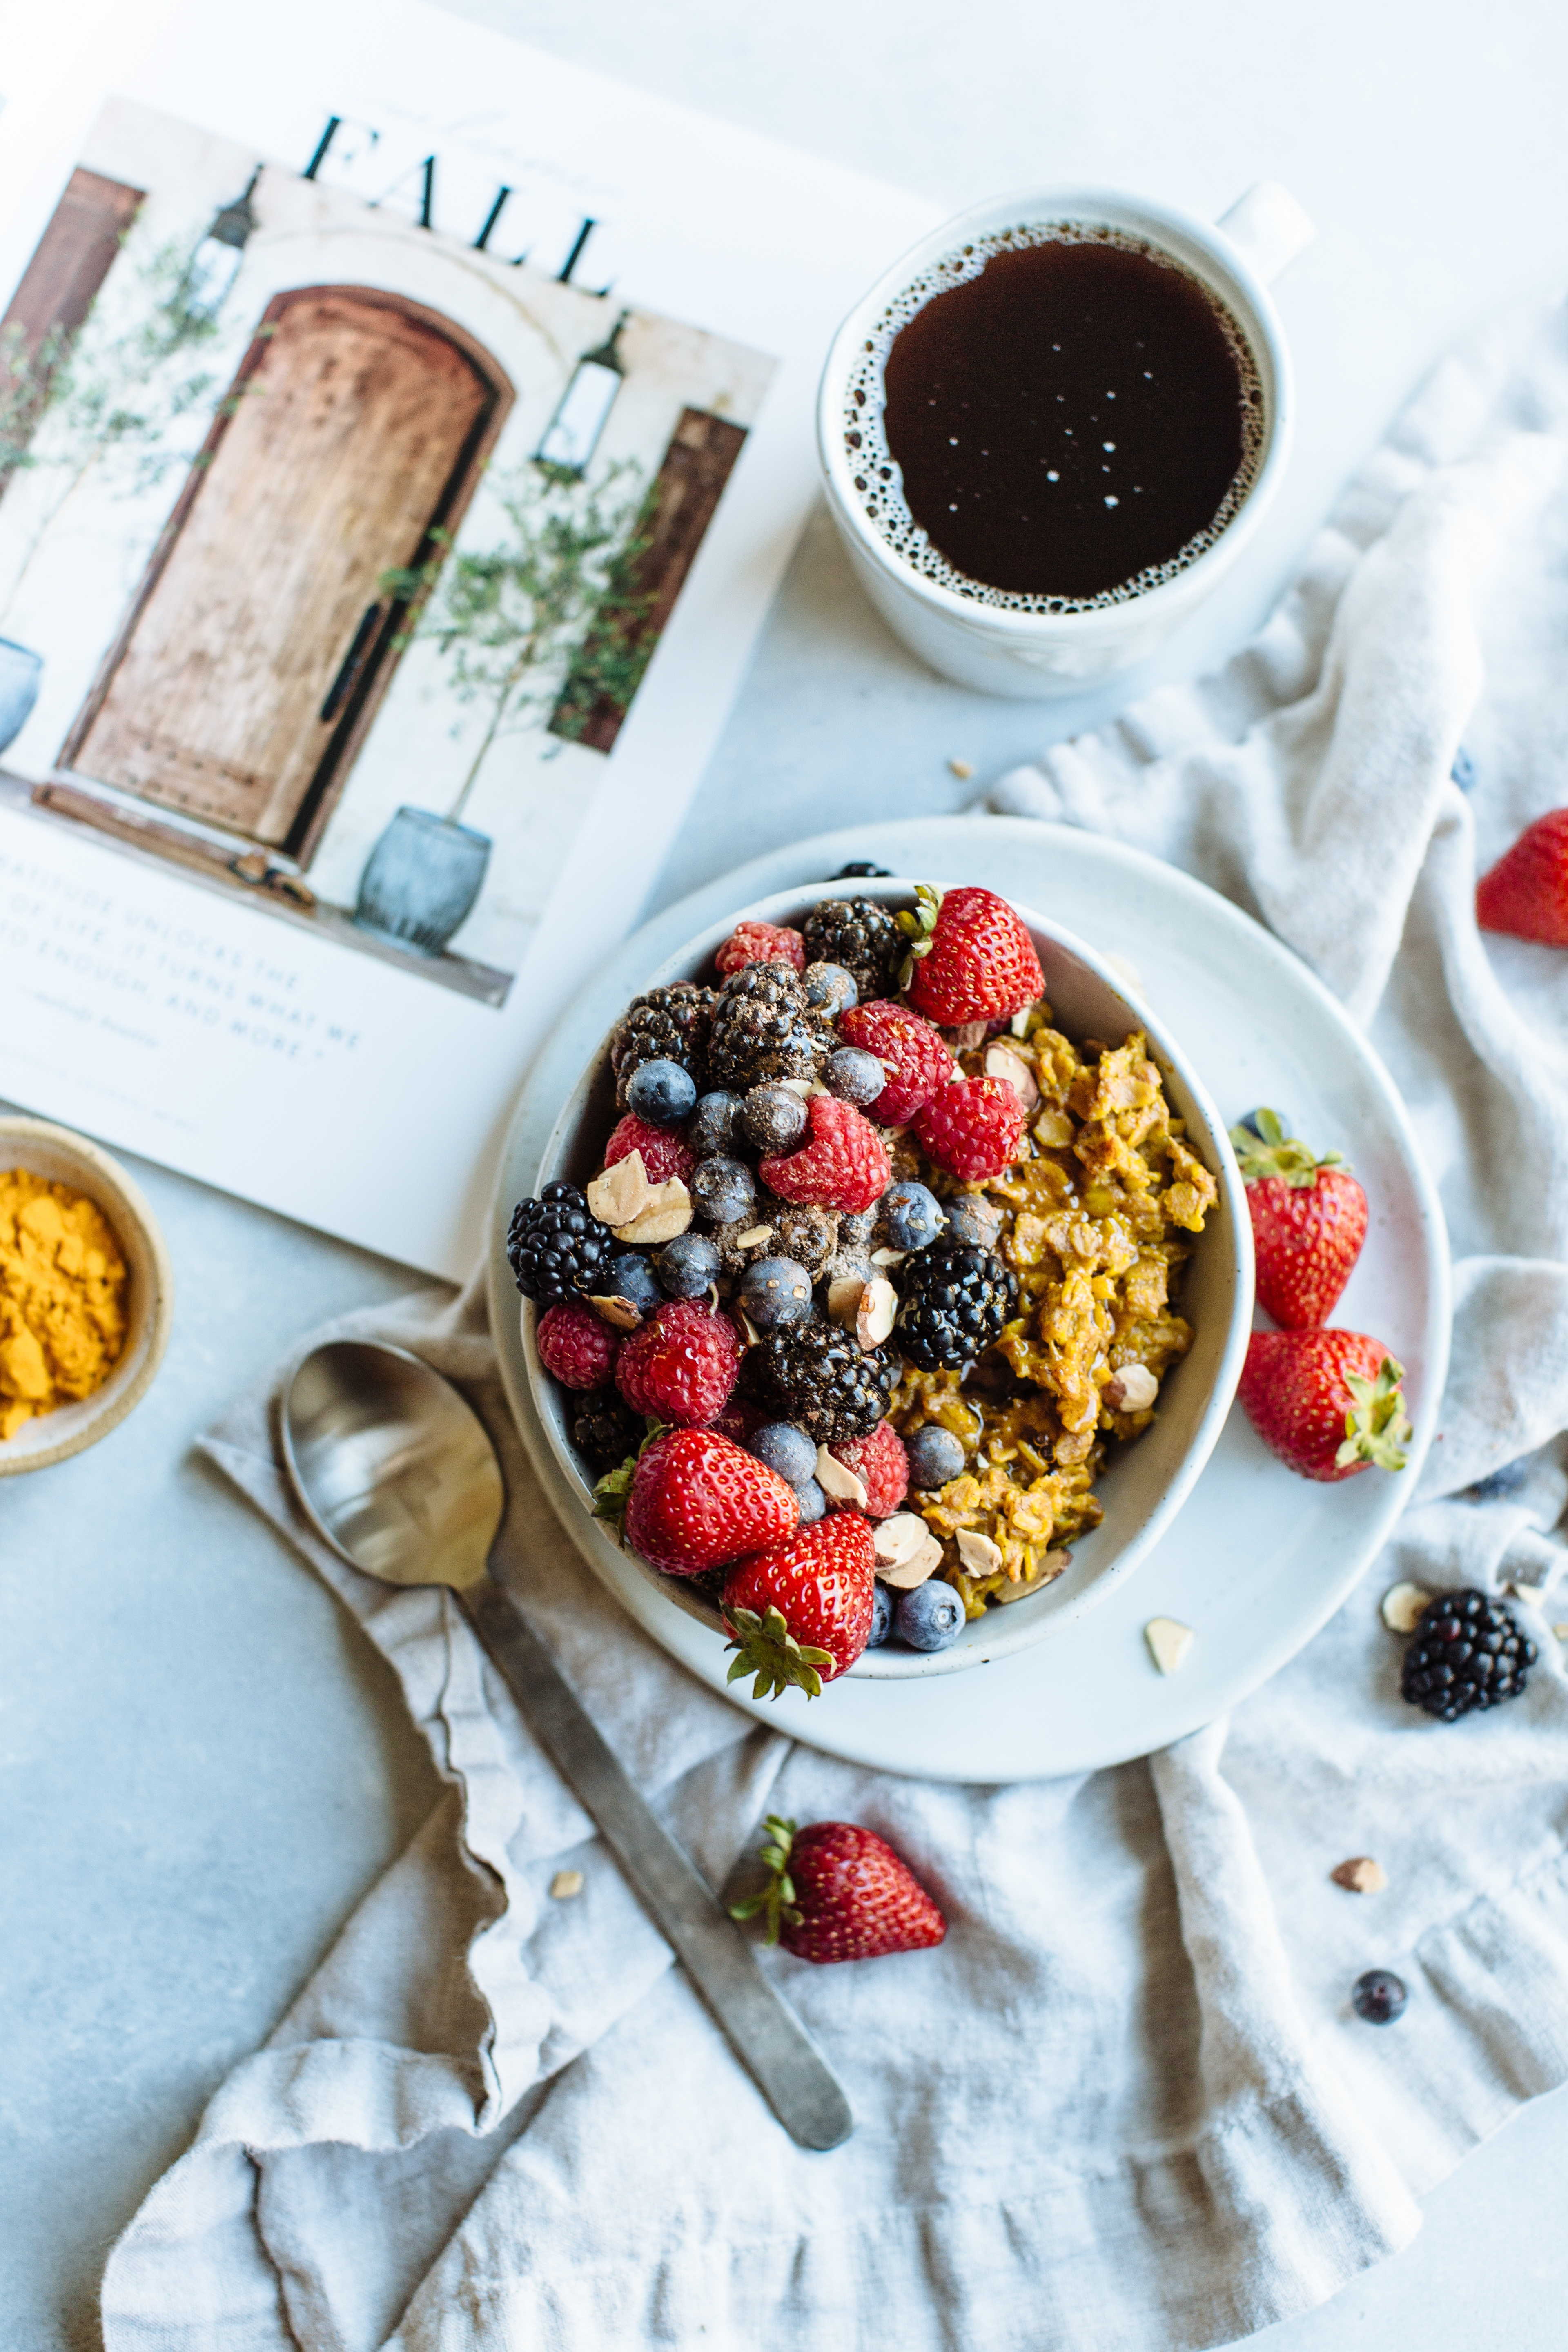 golden oatmeal with berries-1.jpg